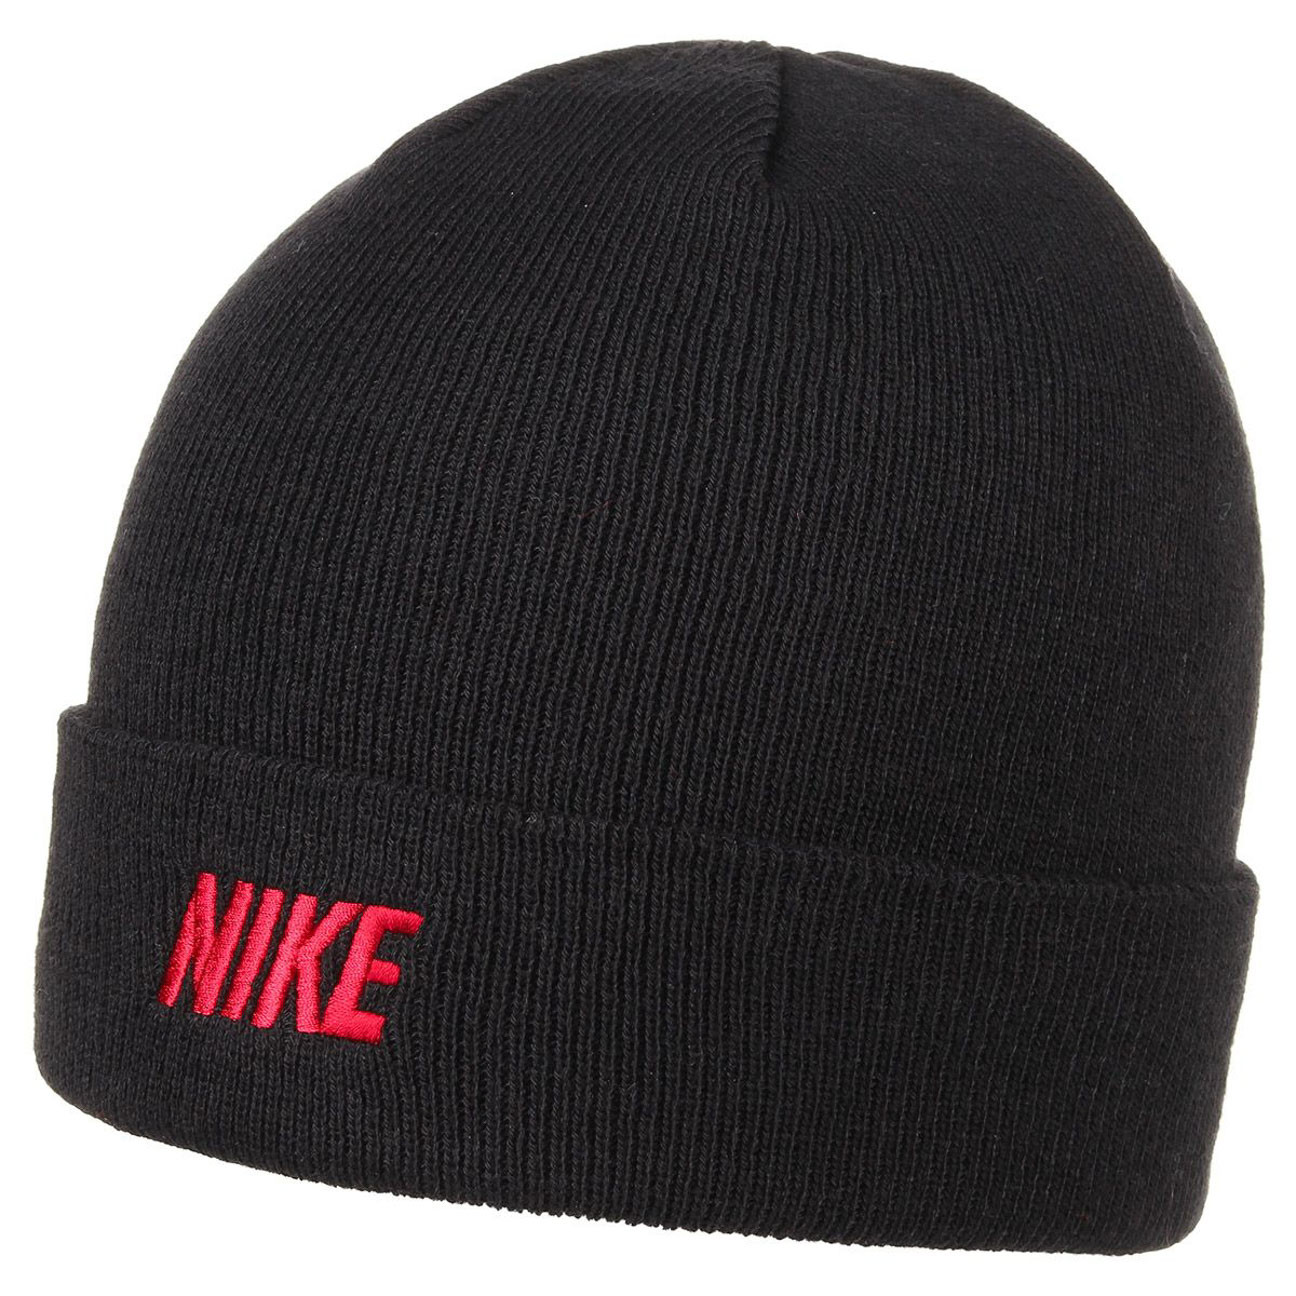 Lovely Iconic Winter Knit Hat by Nike Eur 19 95 Hats Caps Winter Knit Hats Of Charming 40 Photos Winter Knit Hats